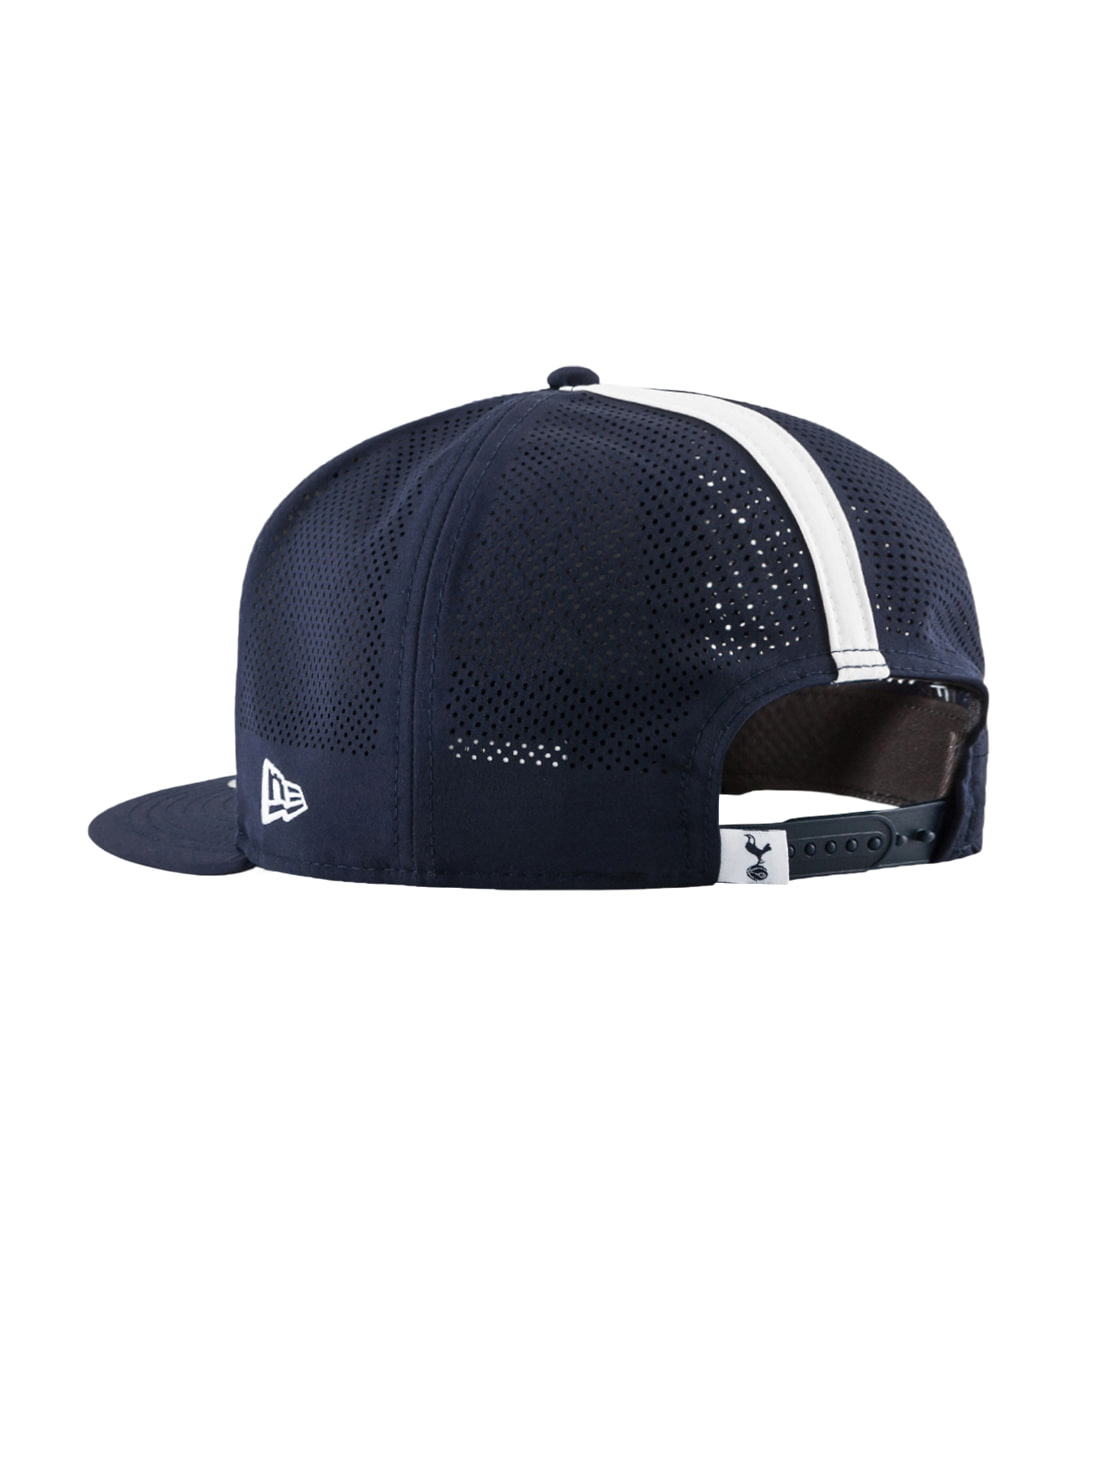 TOTTENHAM PERFORATED MESH SNAPBACK - NAVY